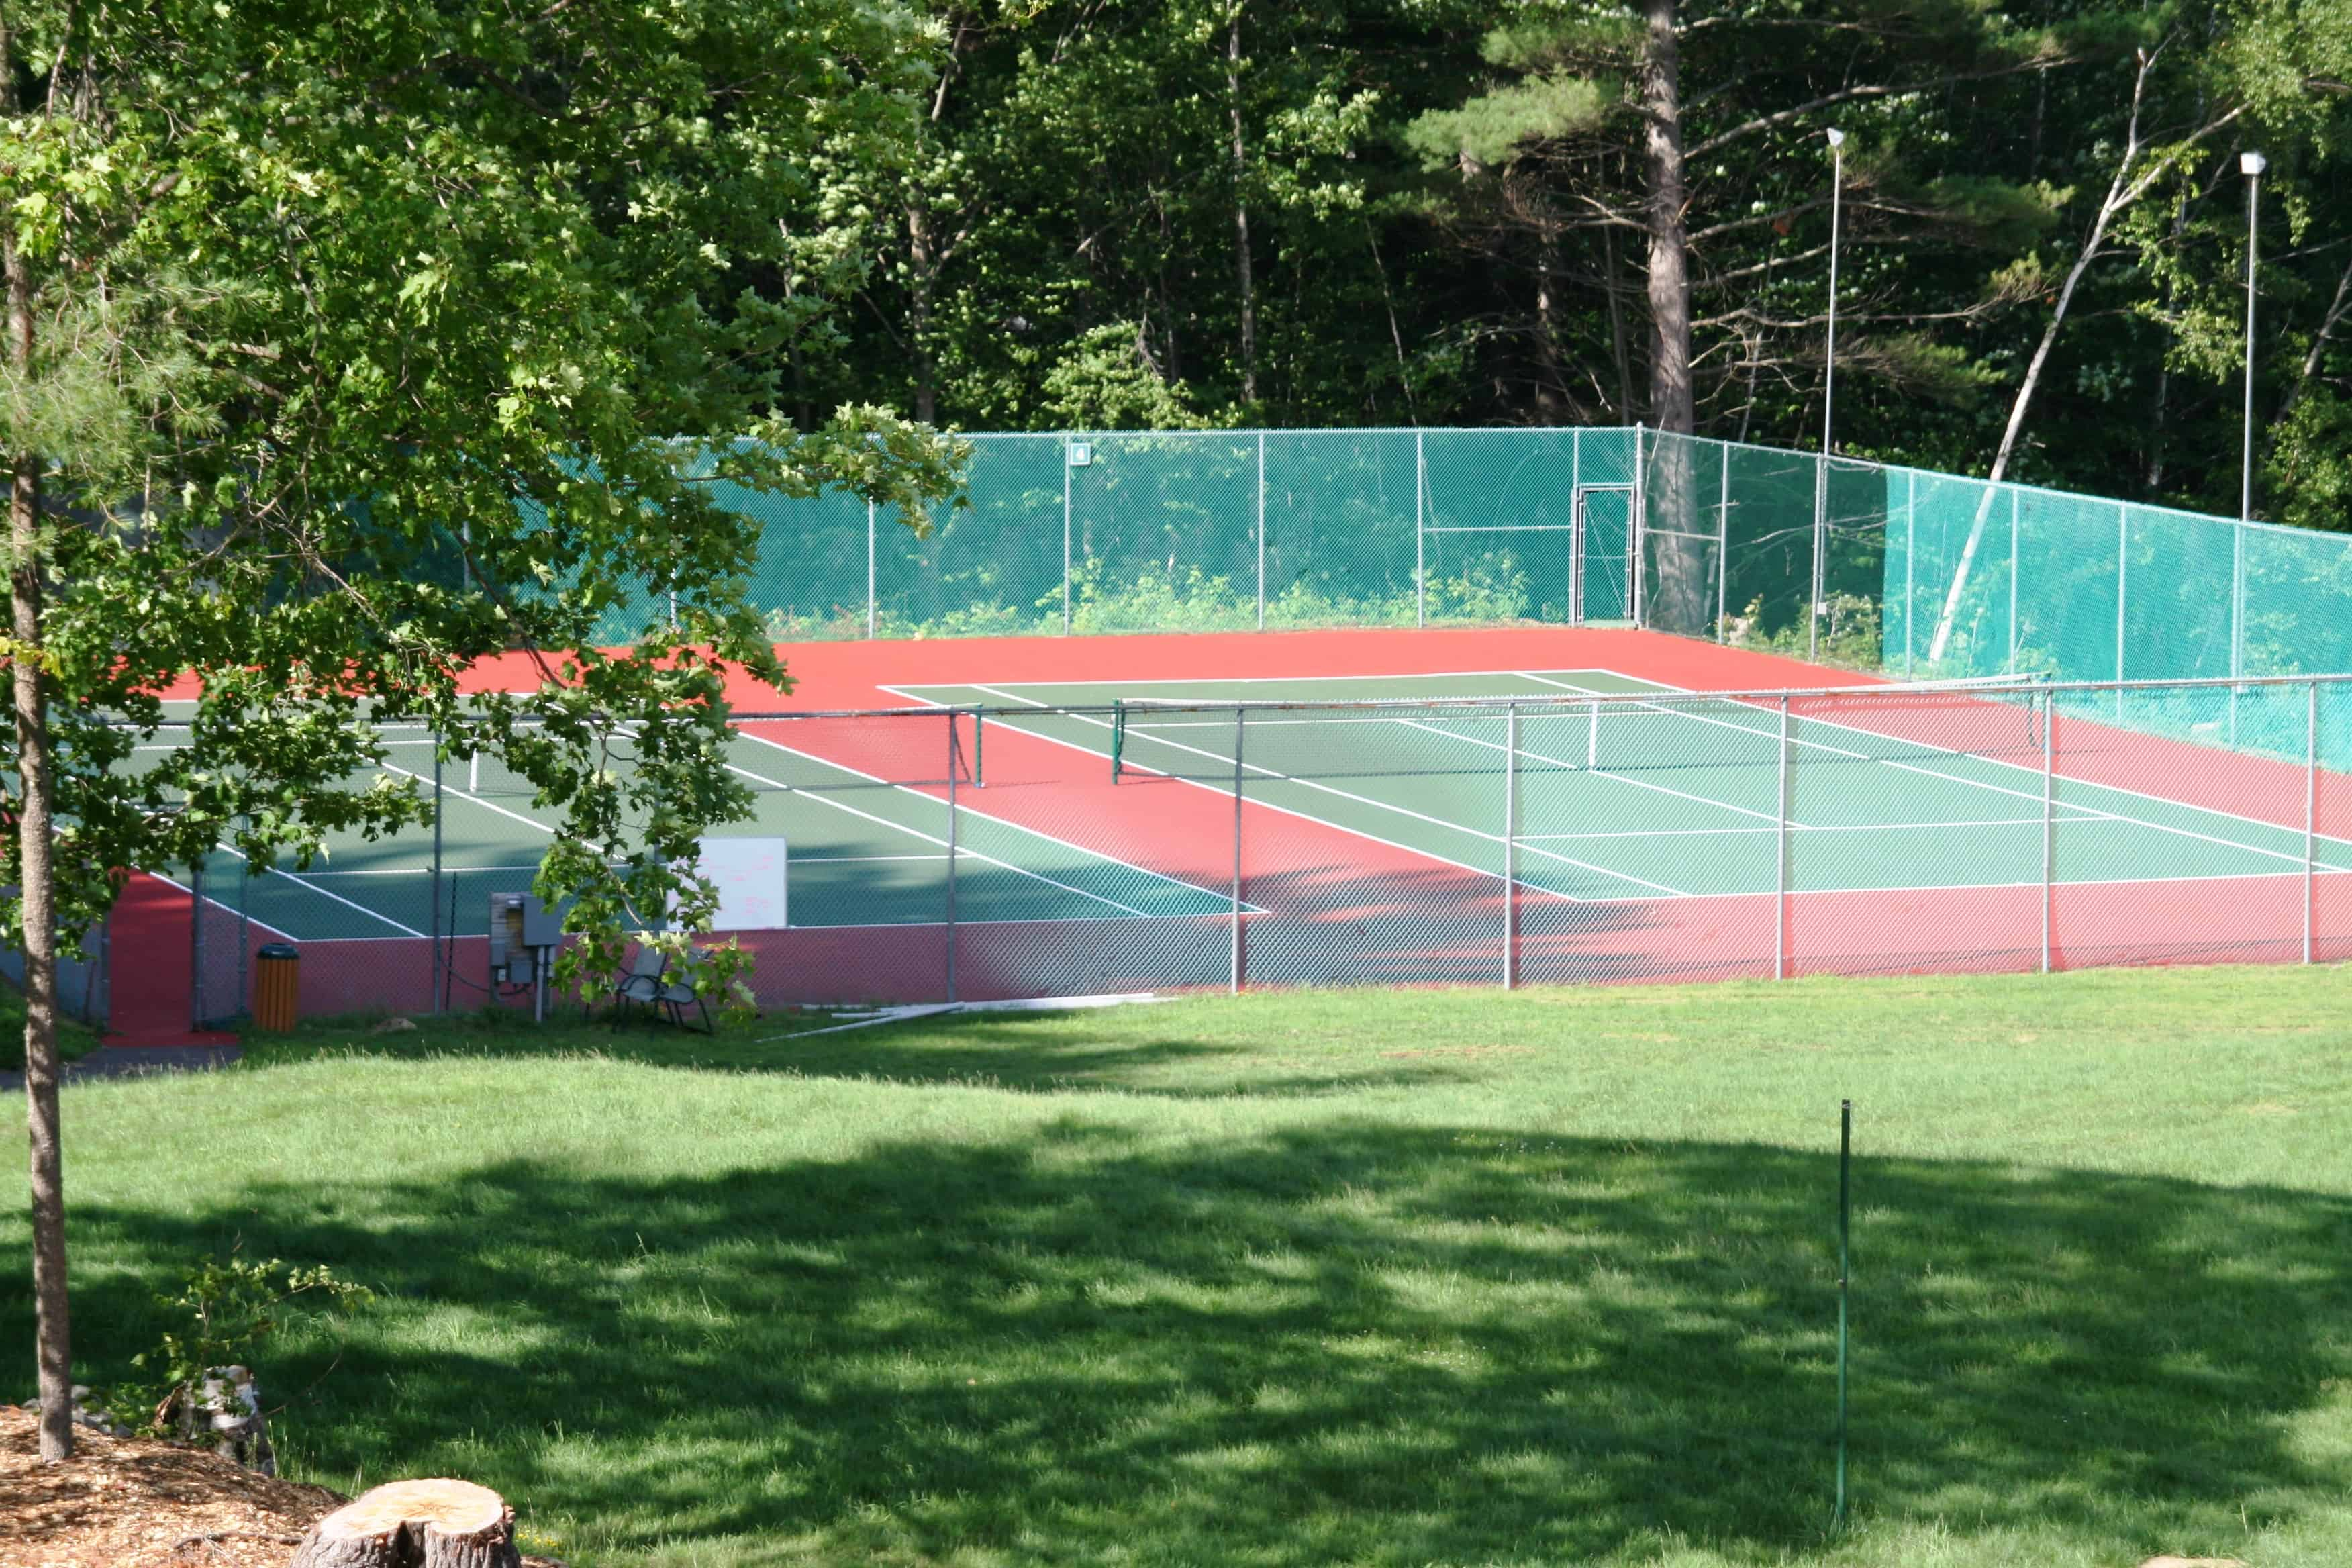 Tennis Courts 27 Condo Road #2, Campton, NH 03223 Alpine Lakes Real Estate